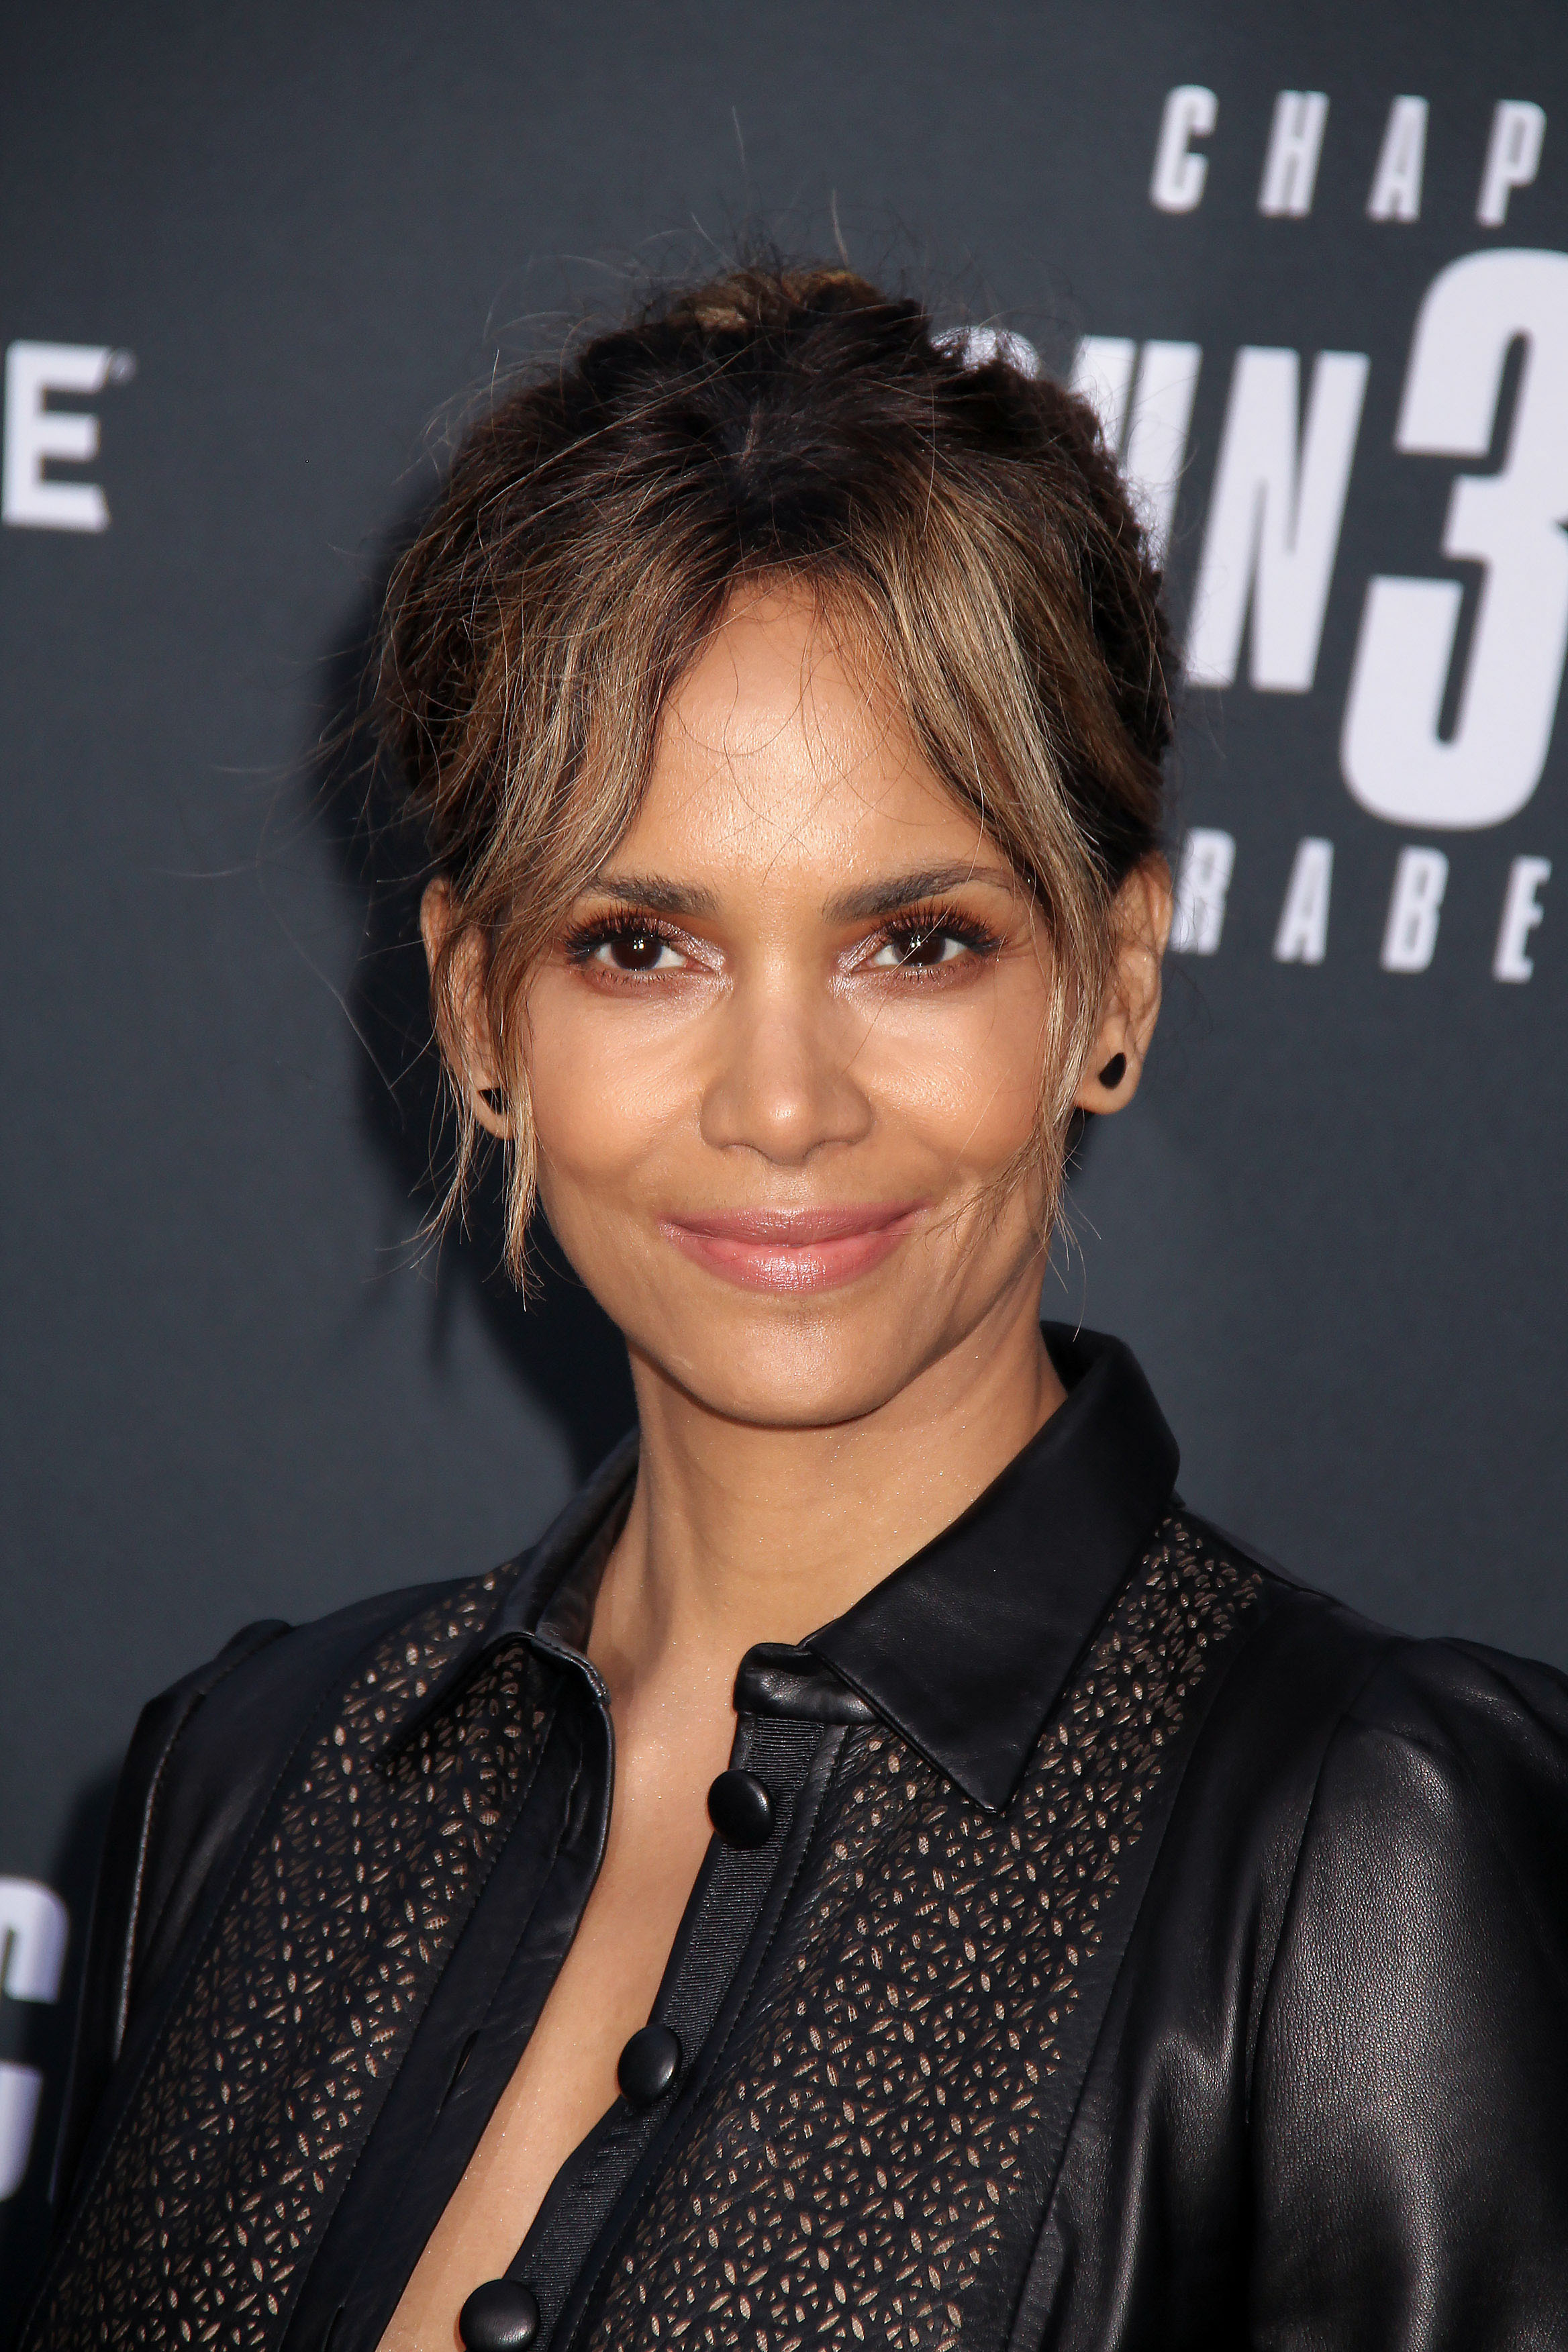 Halle Berry Surprises Lena Waithe With Onscreen Kiss [WATCH]